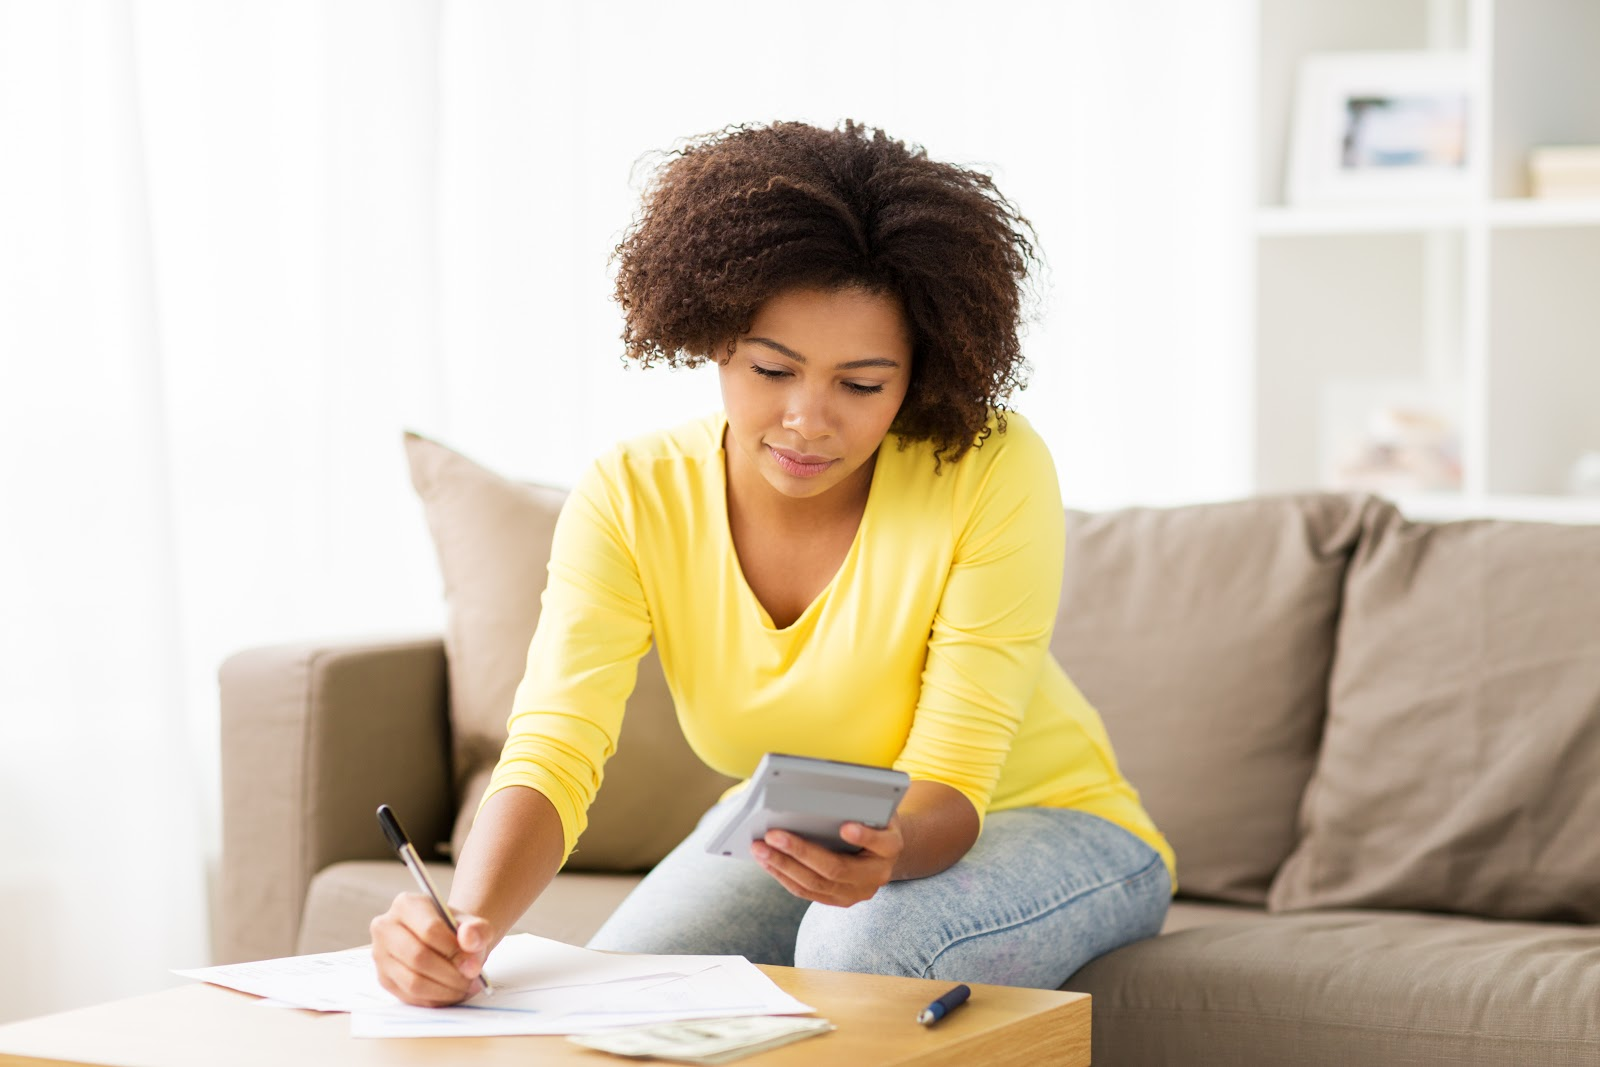 How to become debt-free: A woman uses a calculator and sets a budget